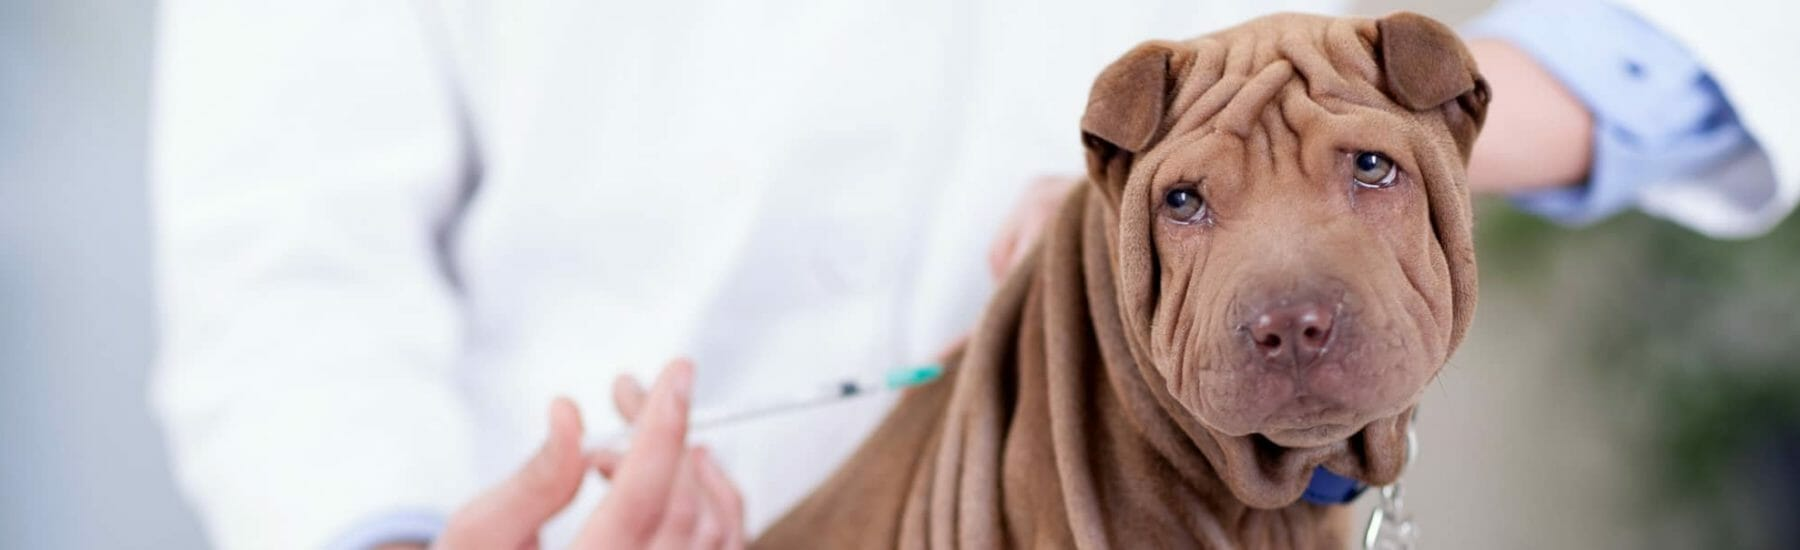 Vaccinations for Puppies and Dogs